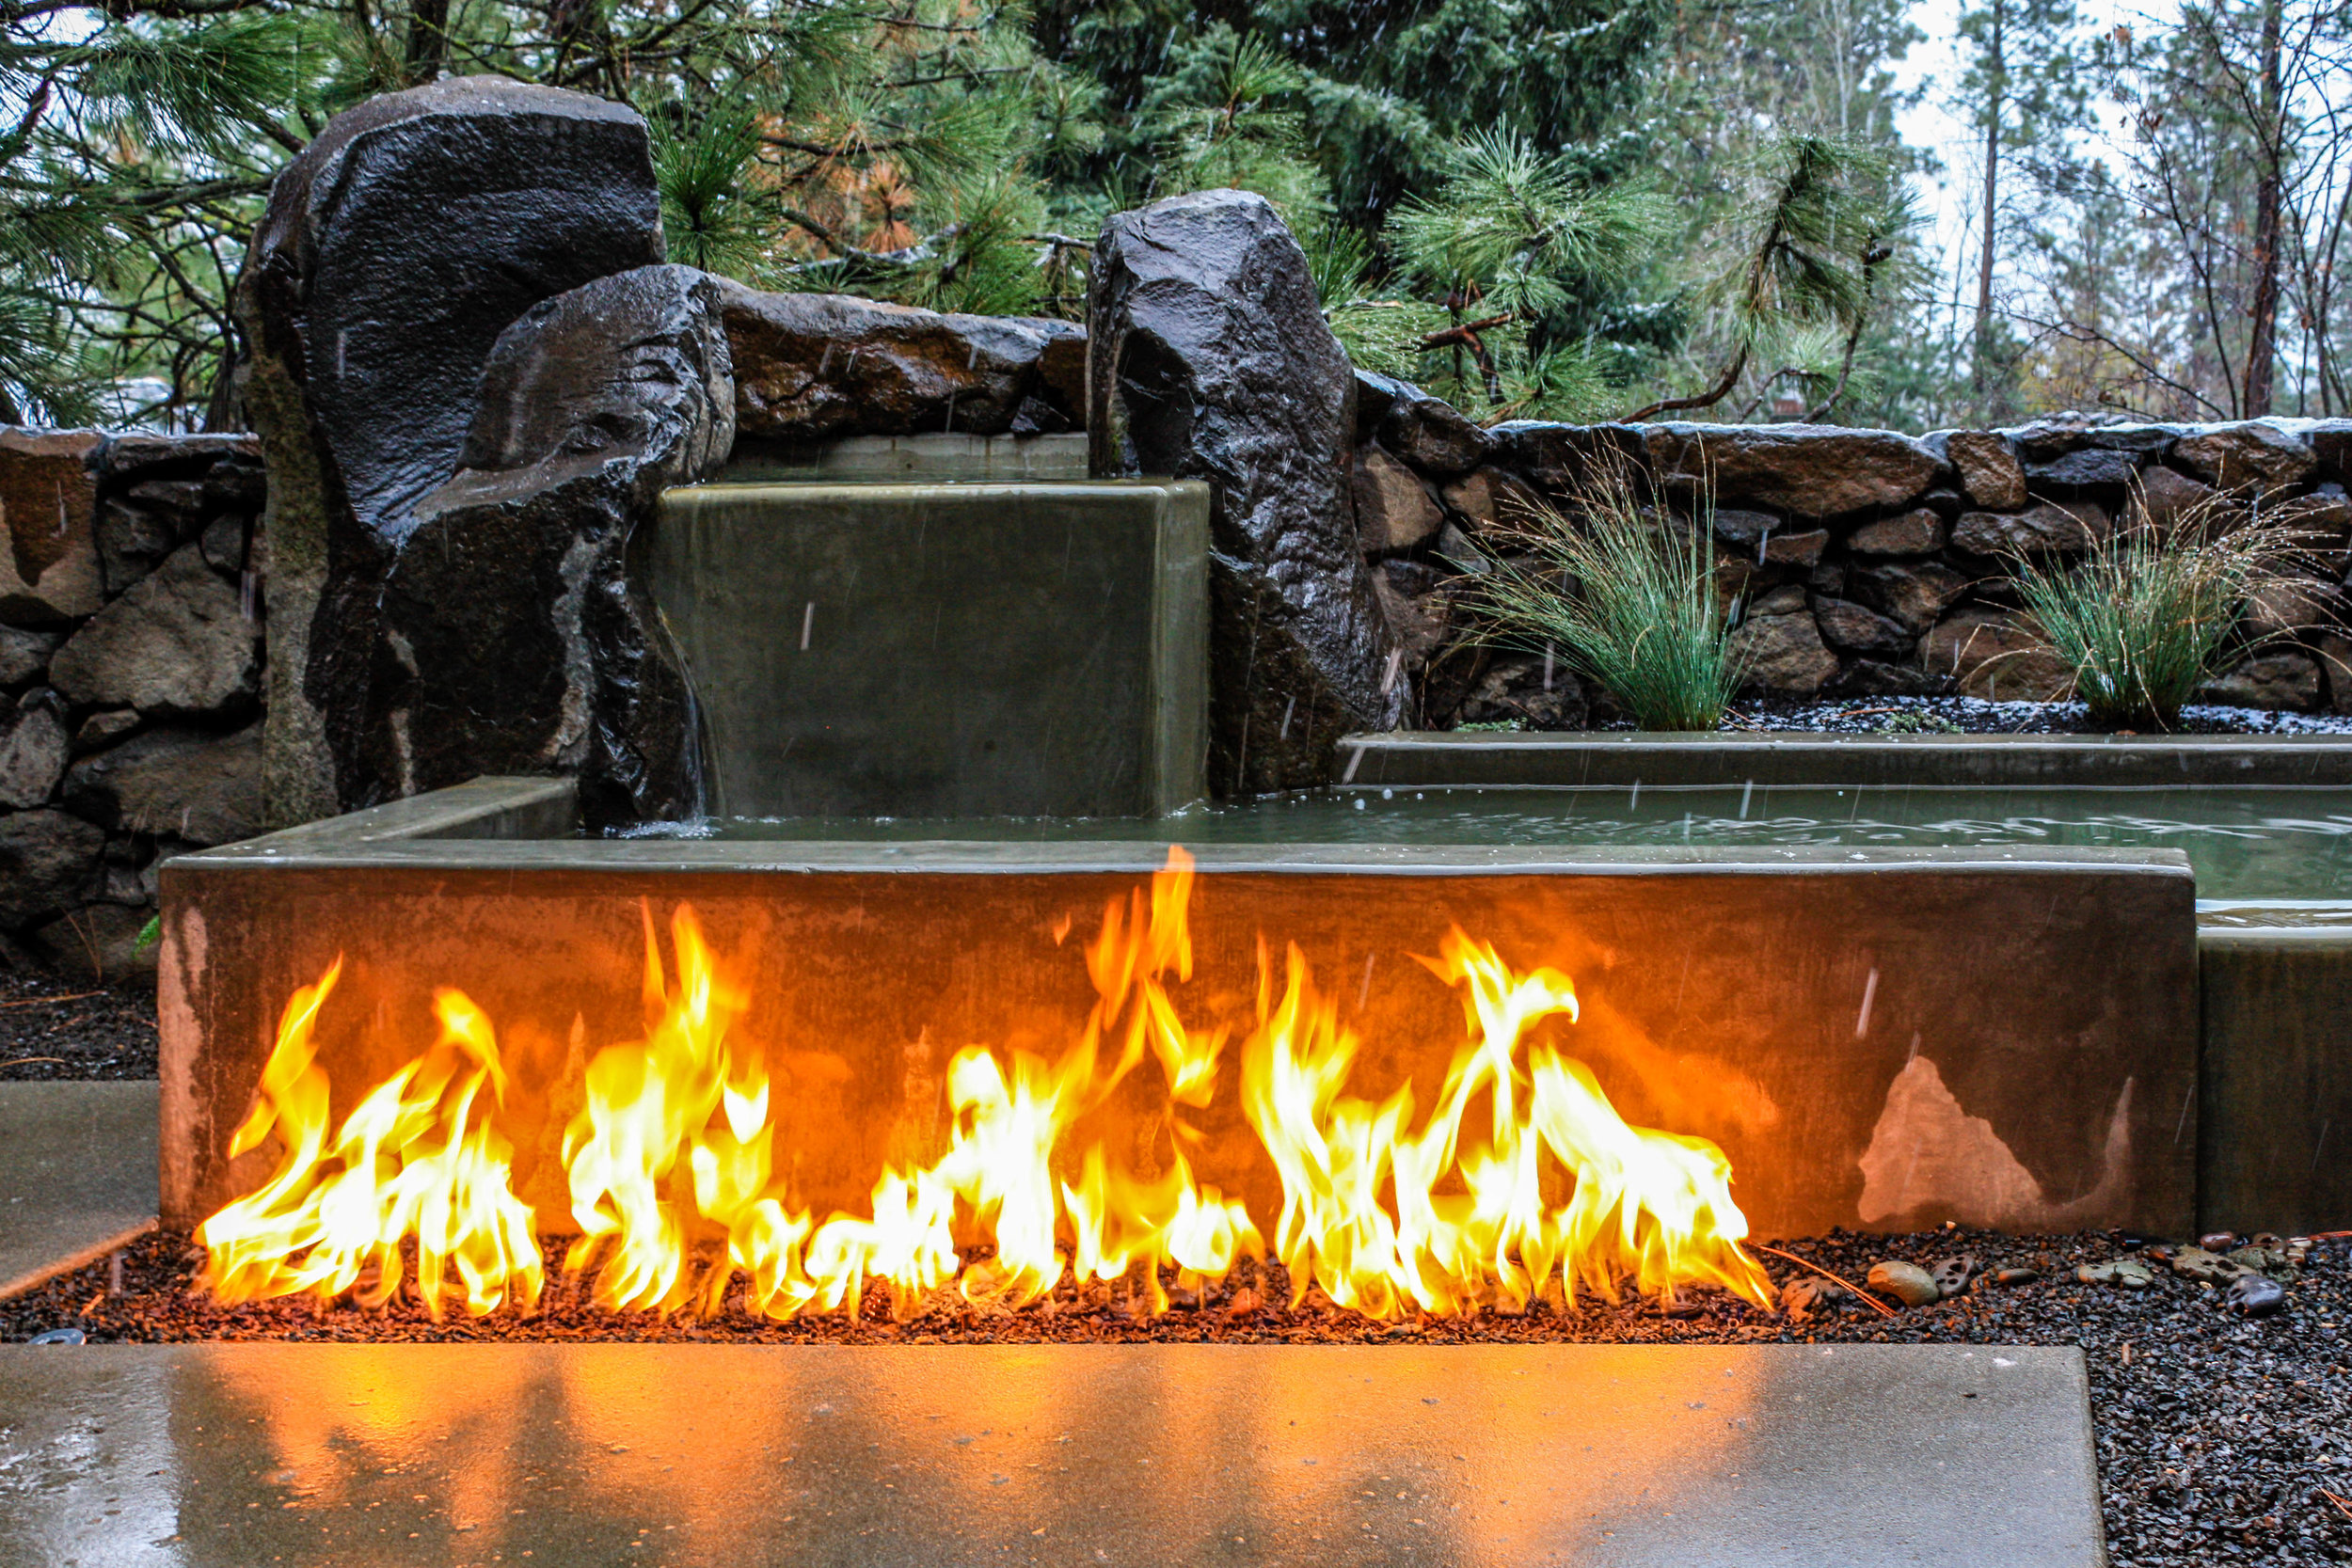 spokane landscape with water and fire feature combination